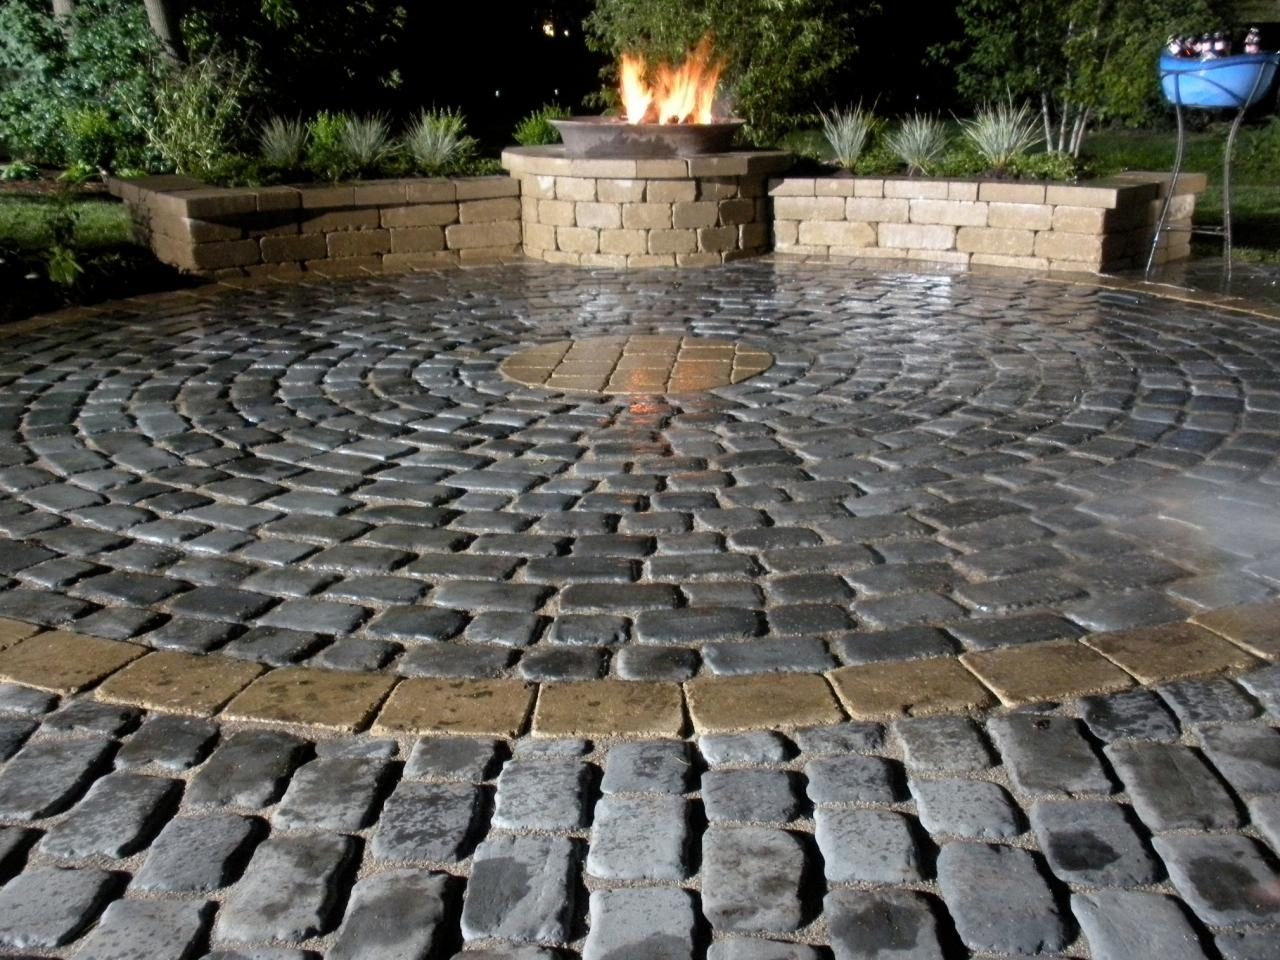 Image of: 66 Fire Pit And Outdoor Fireplace Ideas Diy Network Blog Made Throughout Landscape Fire Pits Fireplaces Landscape Fire Pits